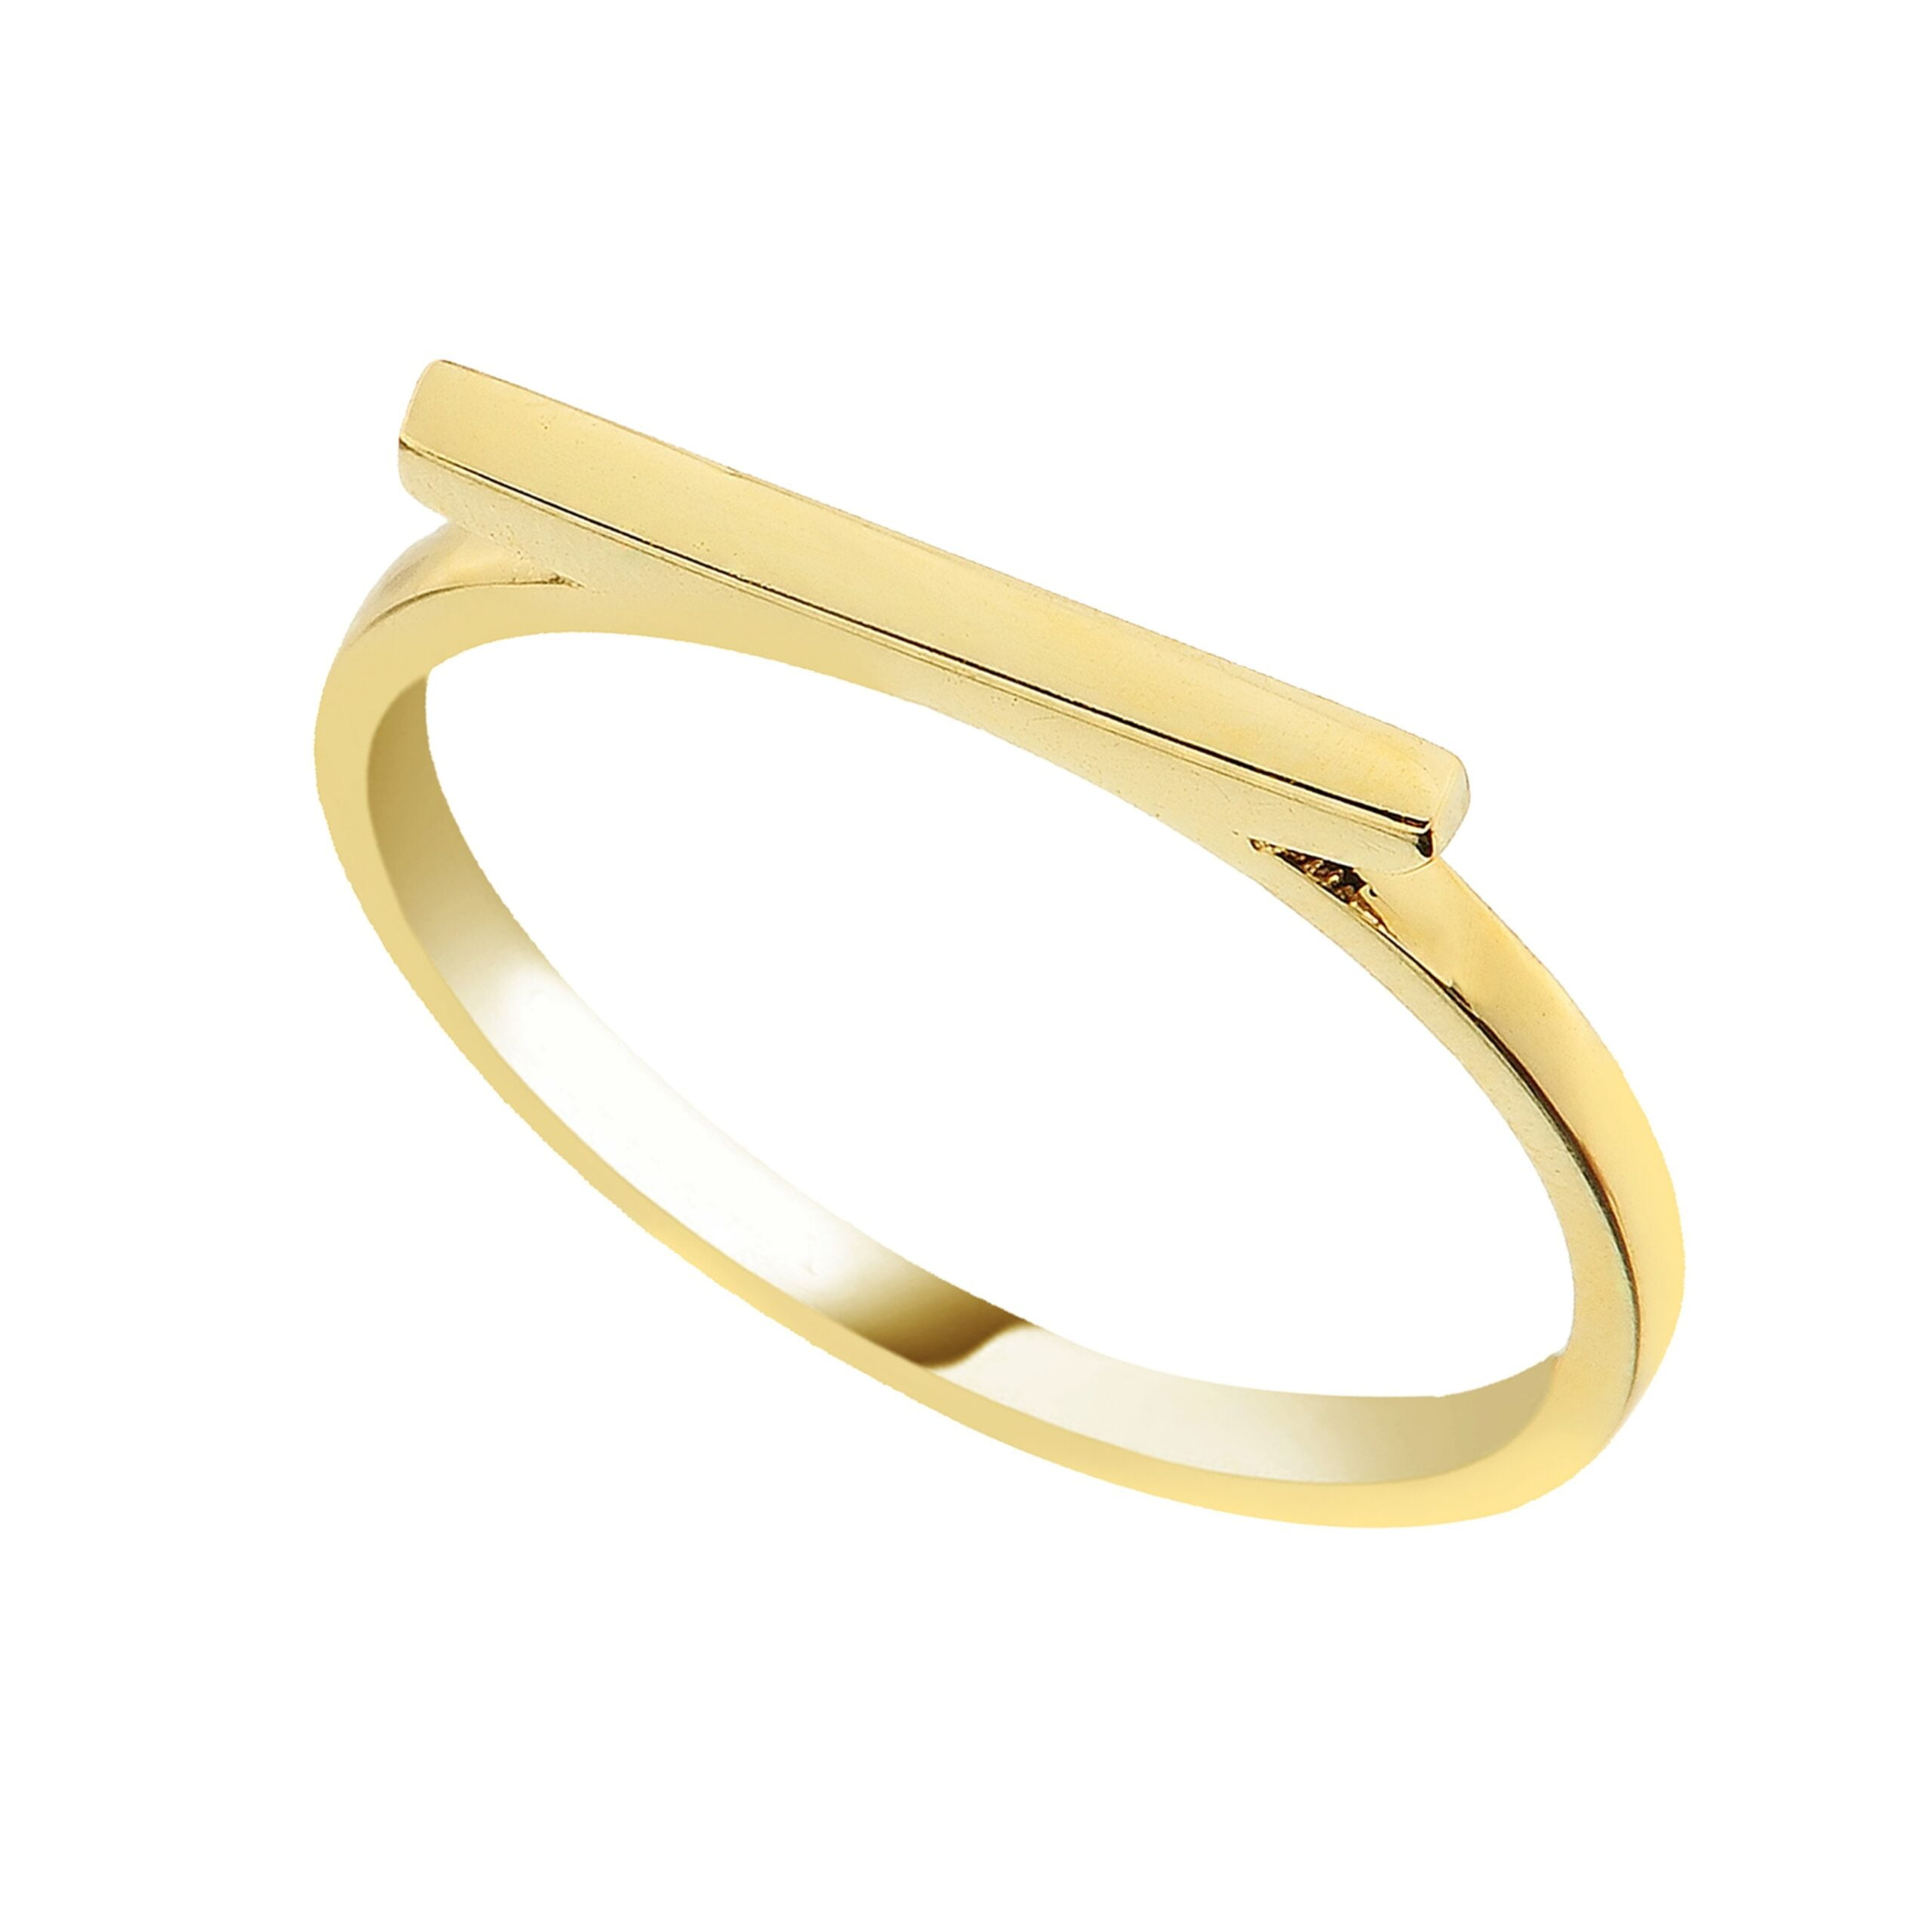 14K Real Solid Gold Long Bar Ring for Women | Flat Bar Rings handmade jewelry birthday gift mother's day christmas xmas valentine's day